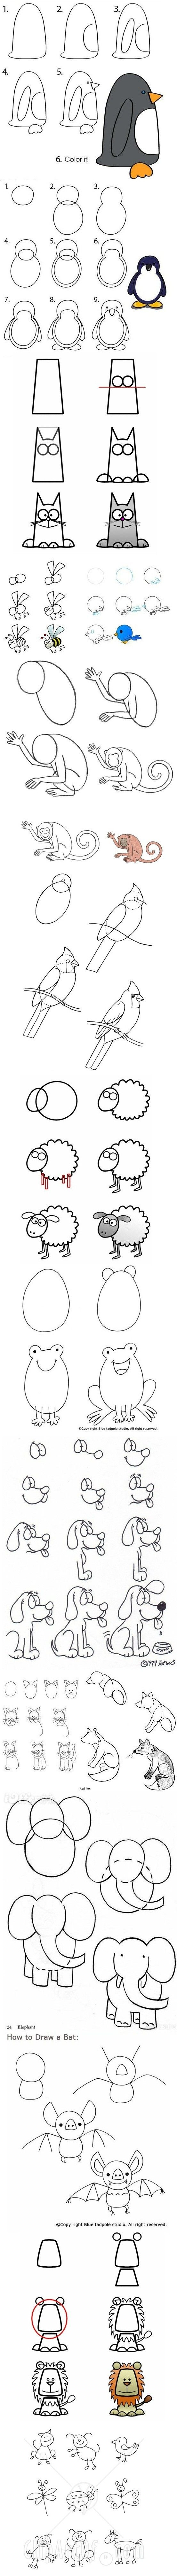 How to draw animals. Fun for kids!